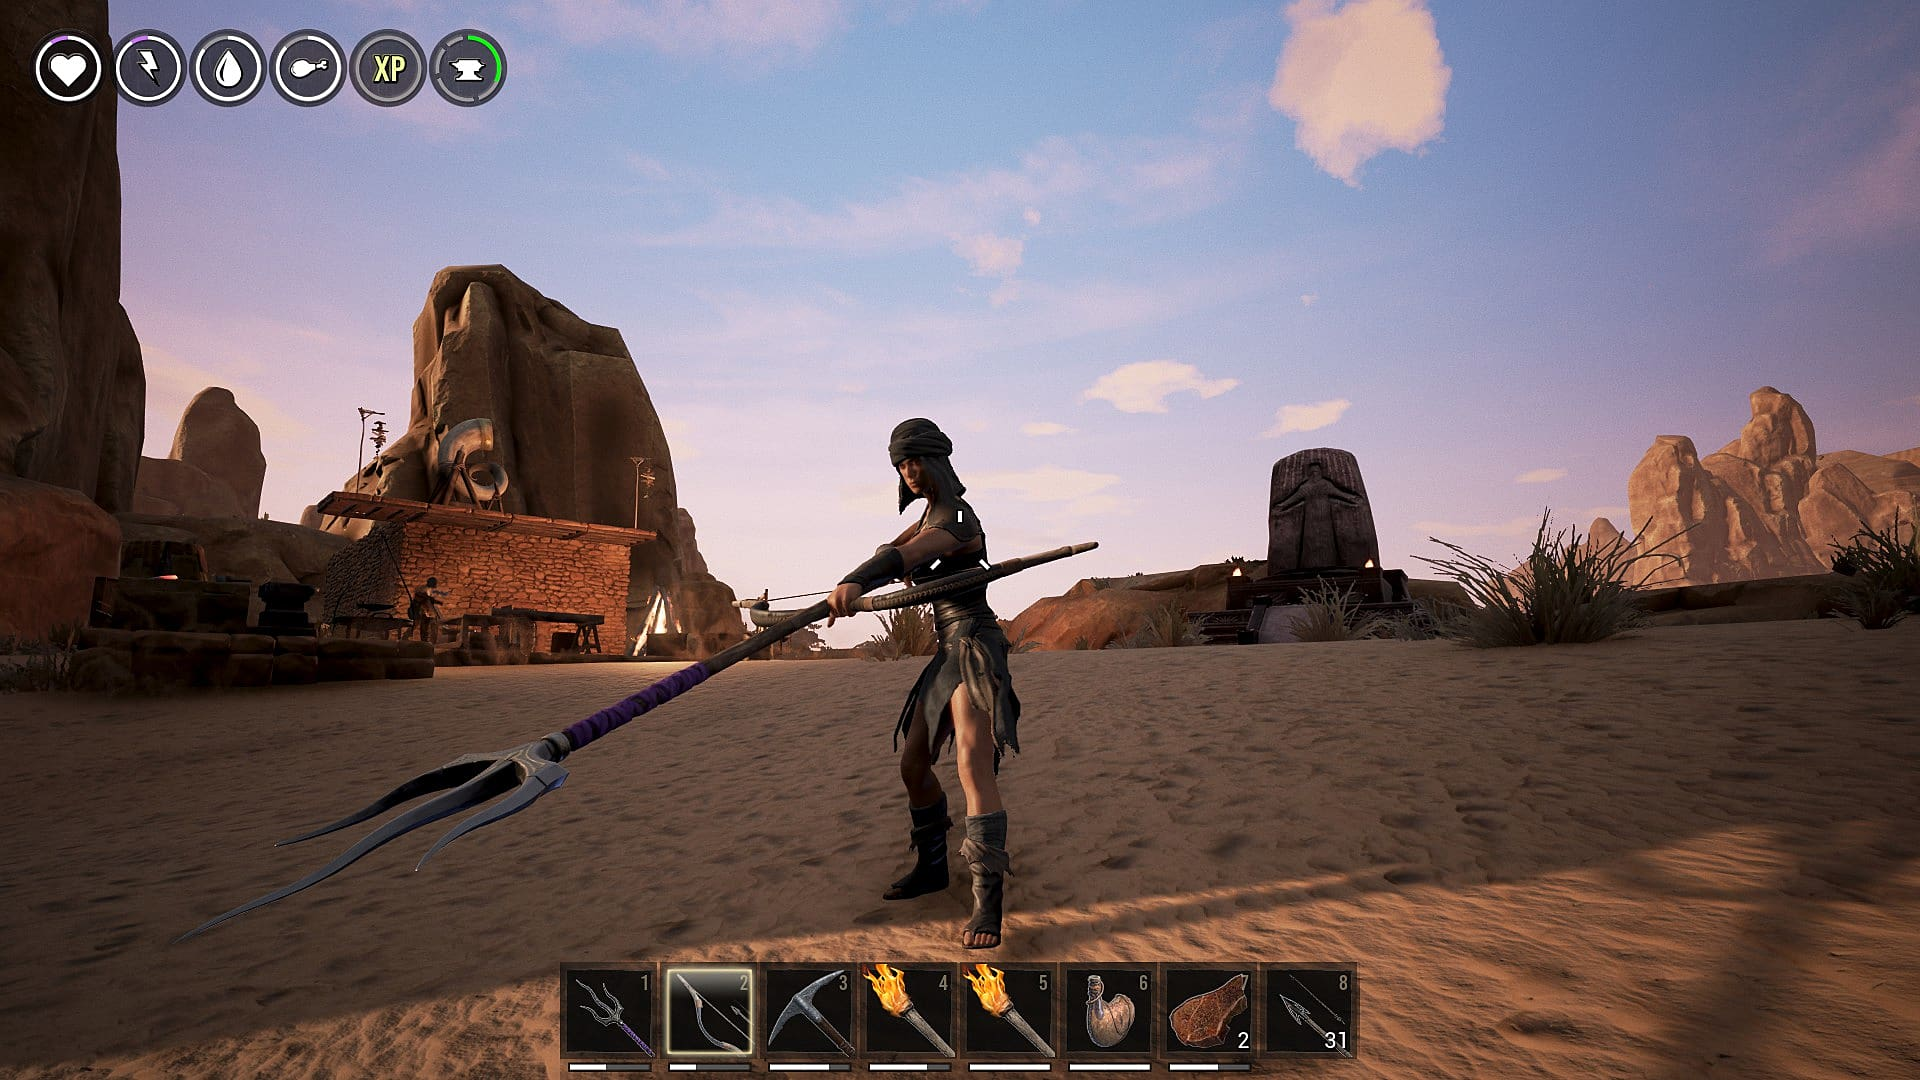 Conan exiles pve guide best weapons builds locations and servers best pve weapons forumfinder Image collections